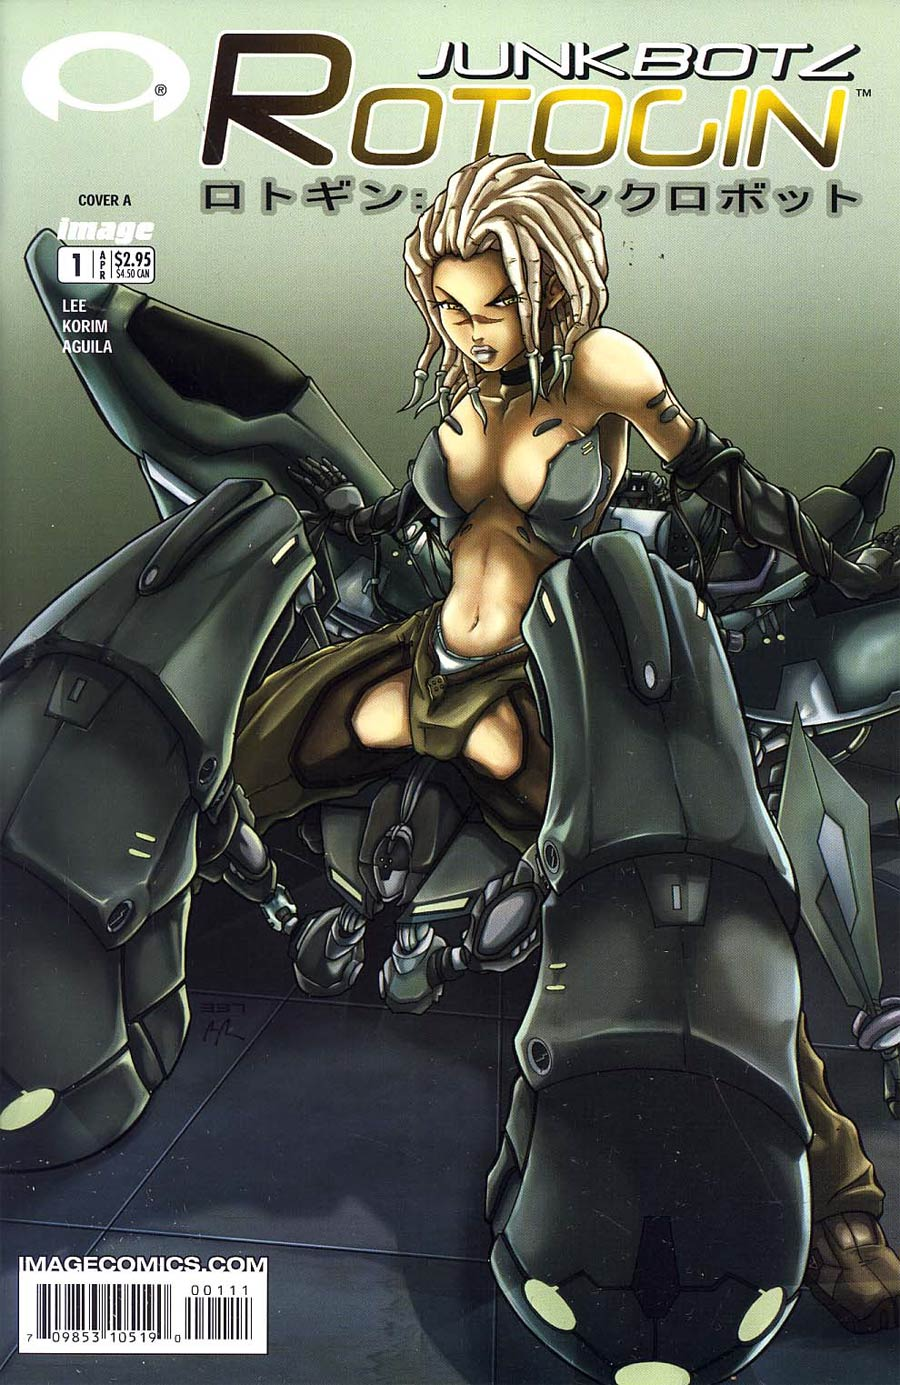 Rotogin Junkbotz #1 Cover A Lee